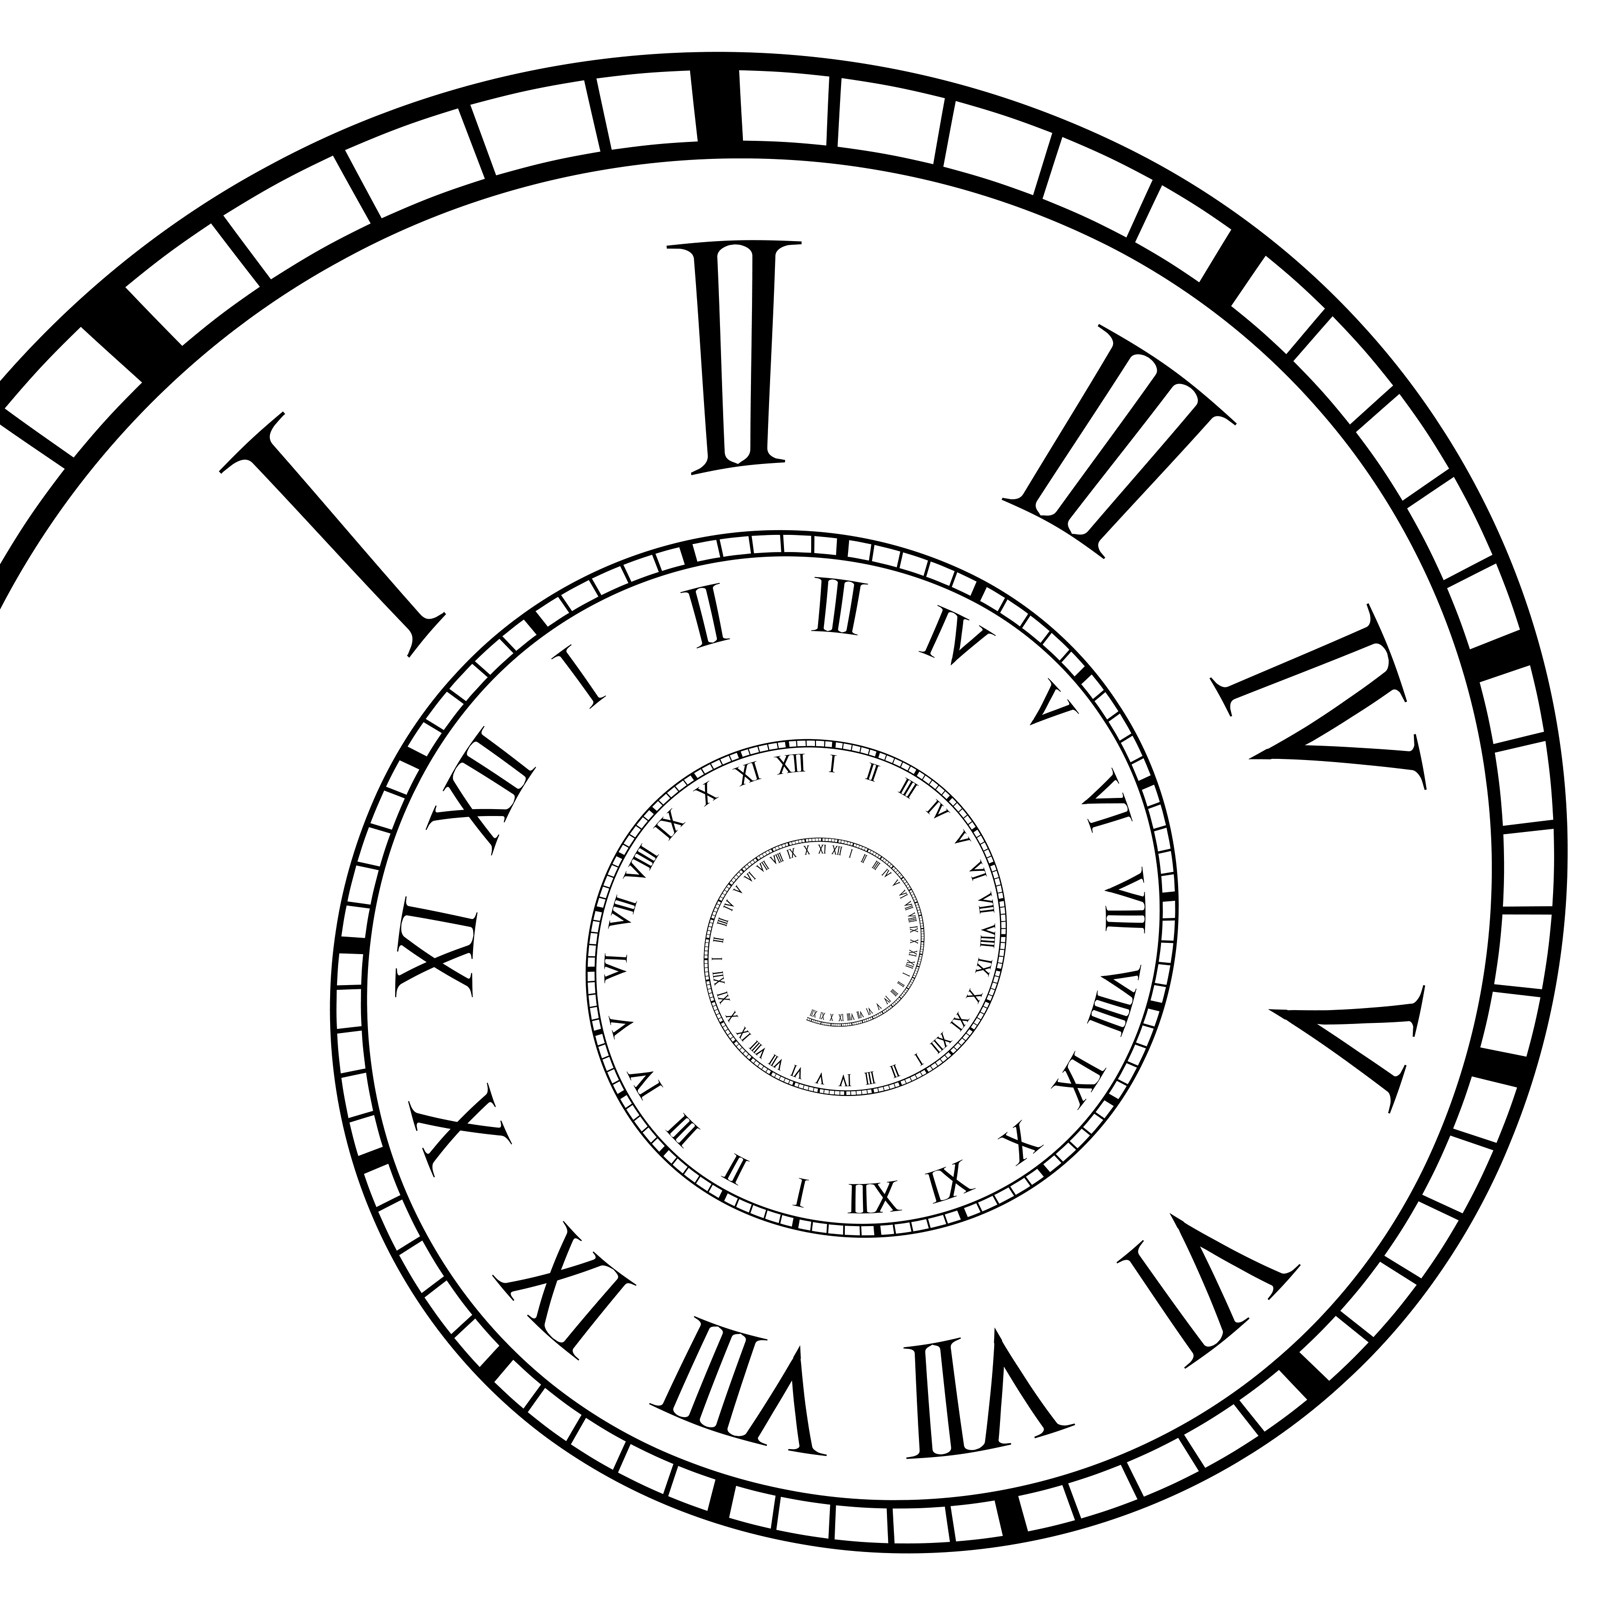 1600x1600 Not This Time Tattoo Clock, Tattoo And Piercings